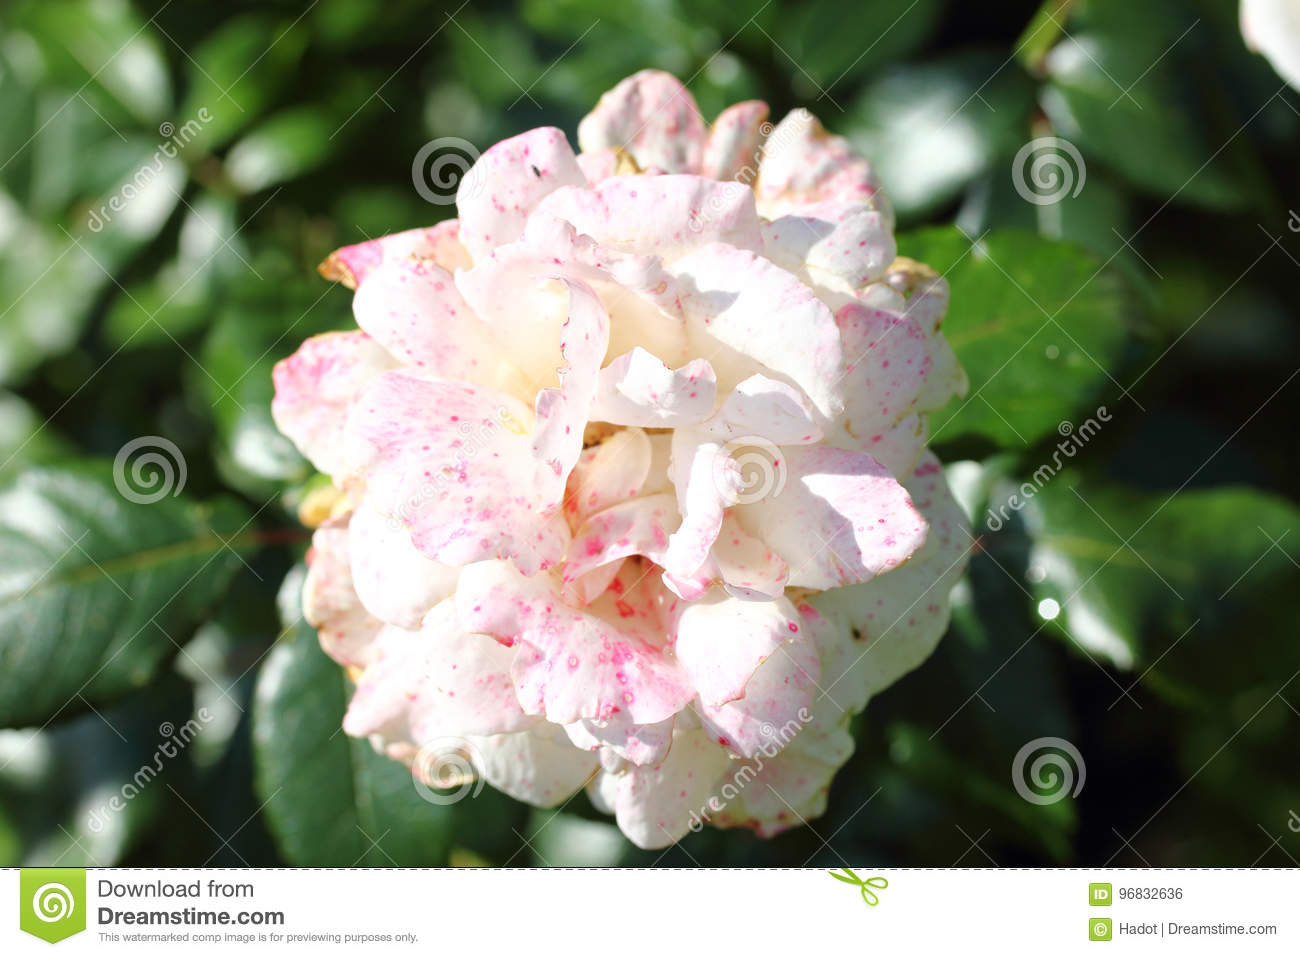 Plante Eternelle Rose Photo Stock Image Du Nature Famille Bouquet Thé